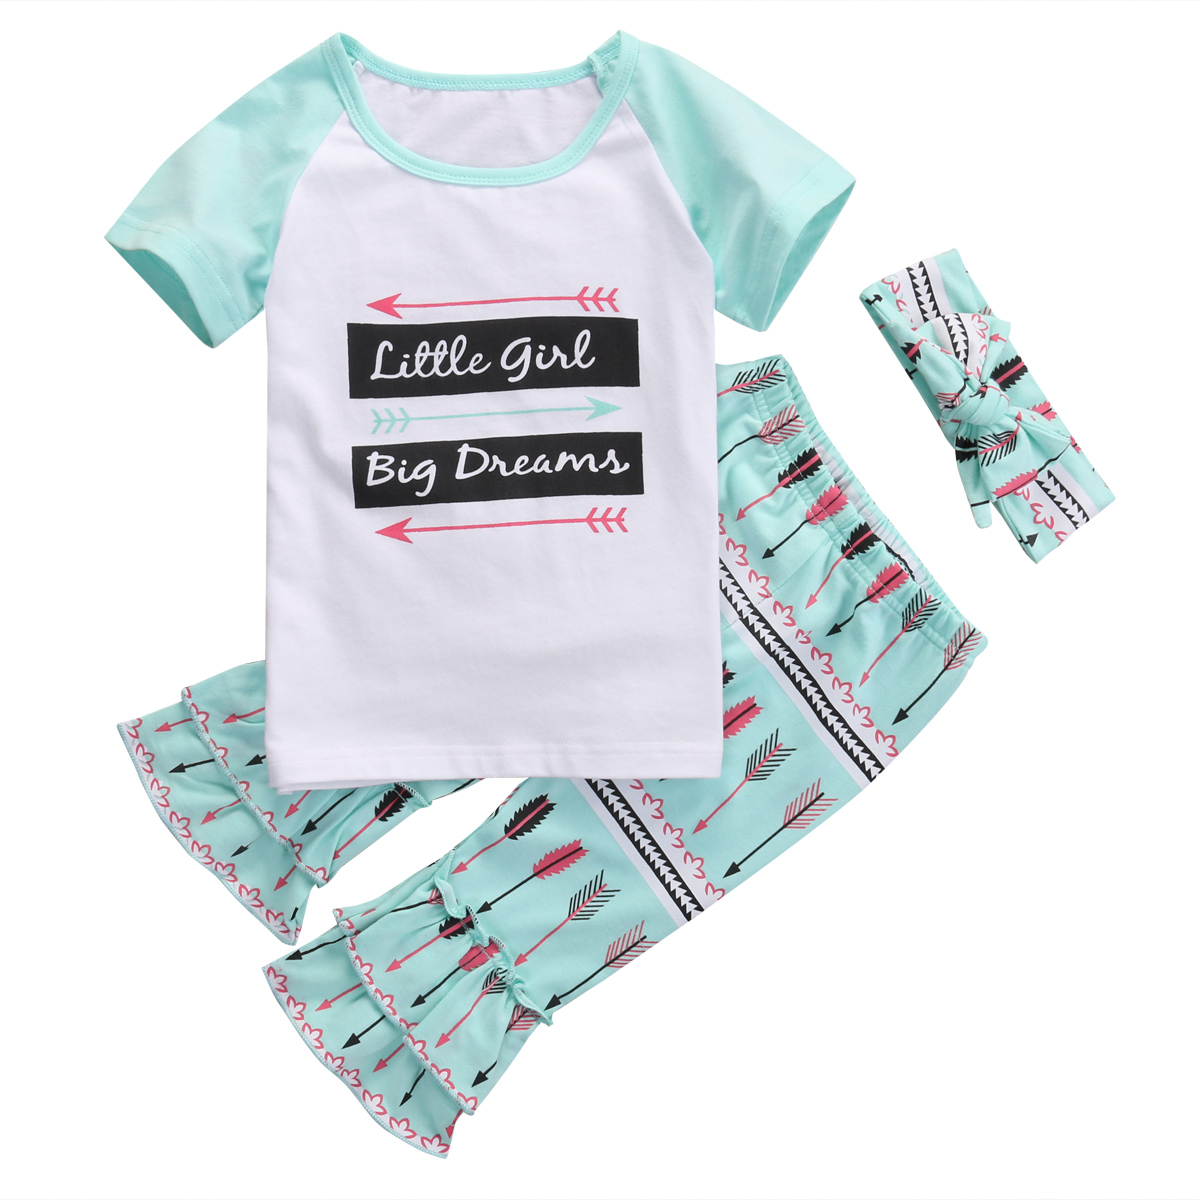 NEW Toddler Kids Girls Clothing Short Sleeve Set Tops T-shirt +Ruffle Pants Floral 3Pcs Outfits 1-6T